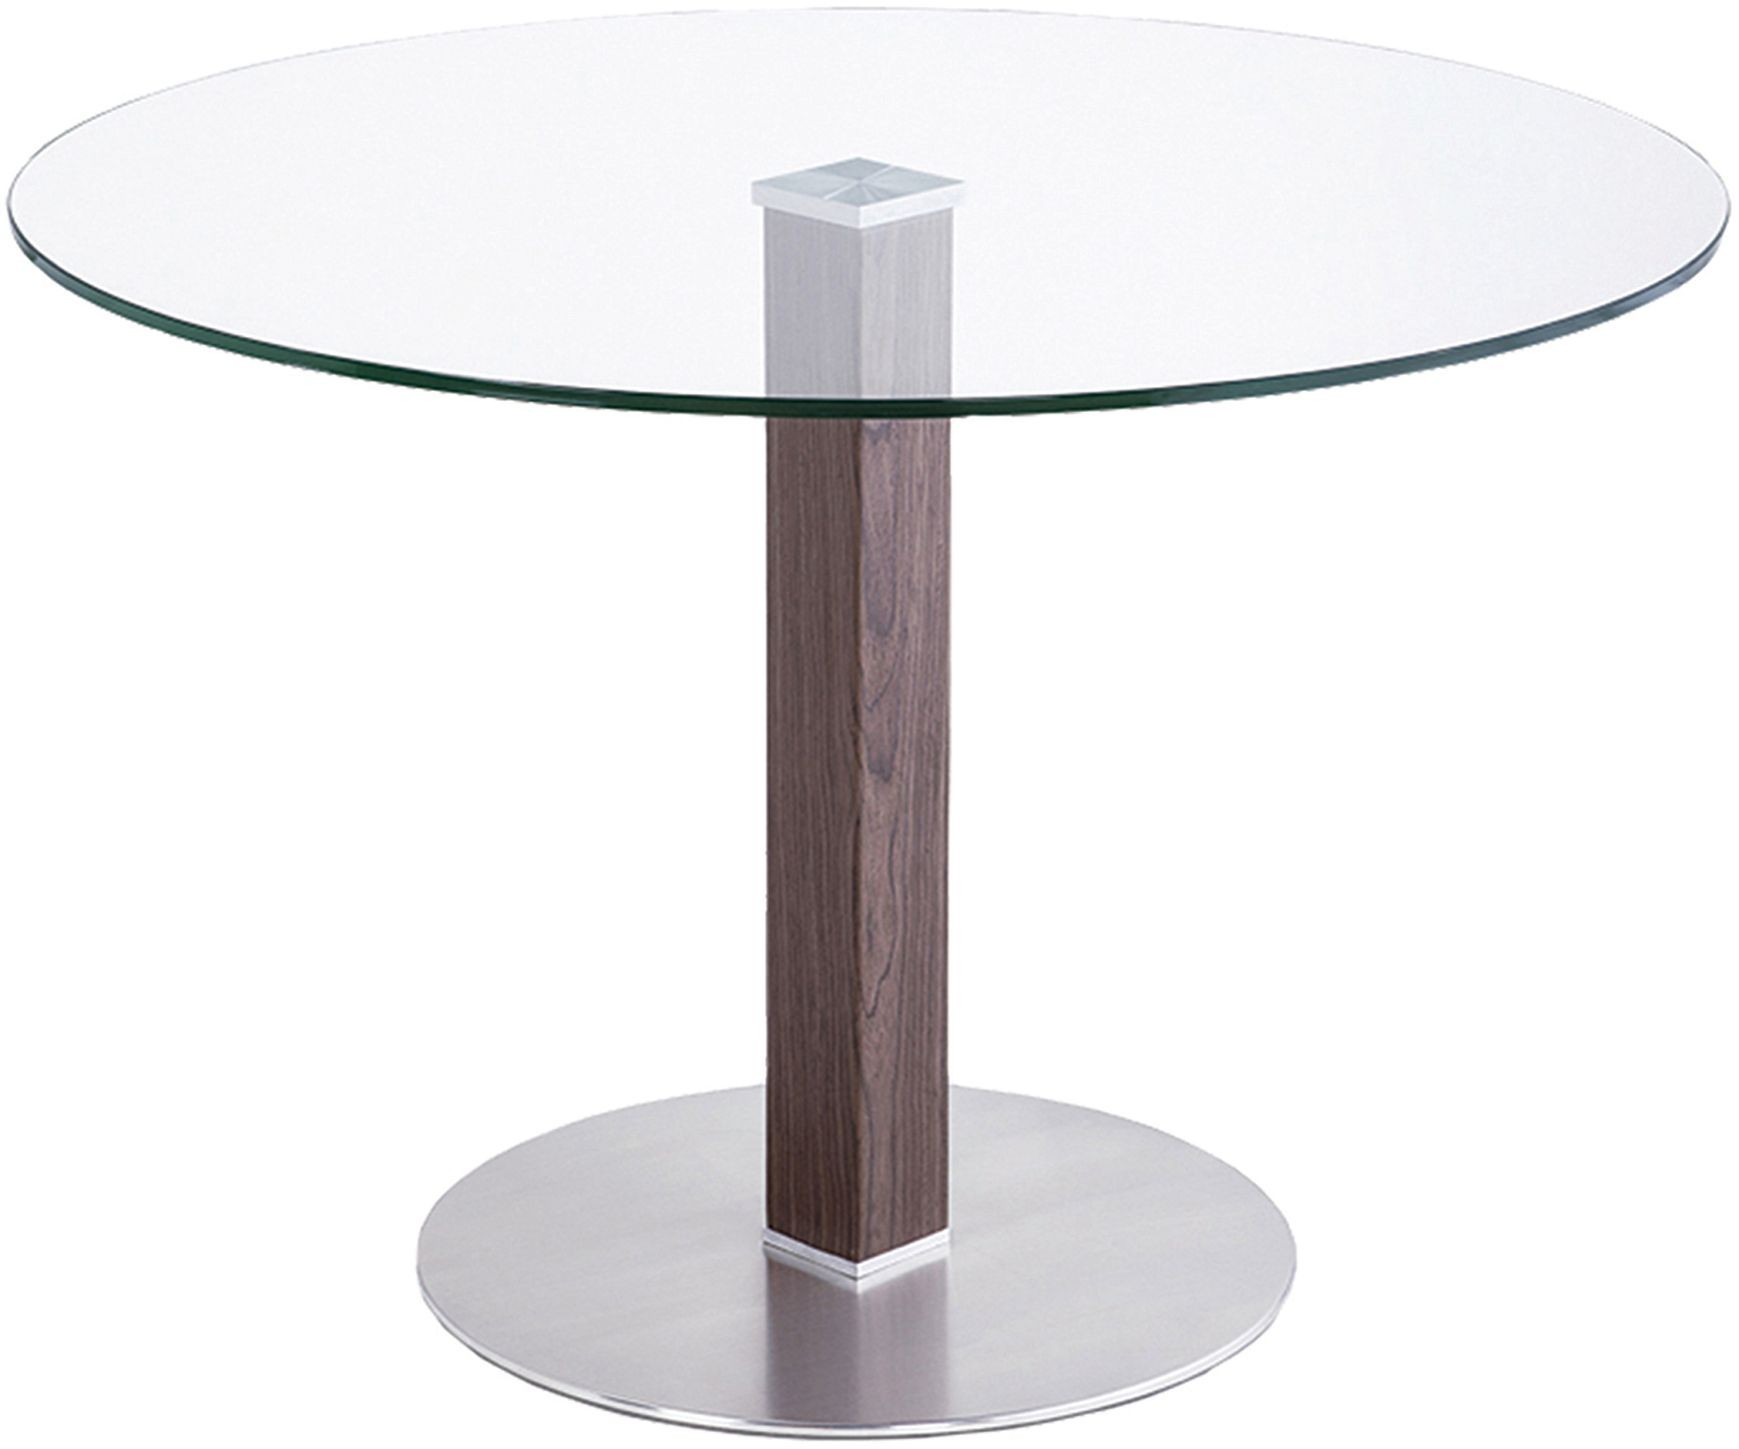 Cafe brushed stainless steel dining table lccadib201to for Stainless steel dining table